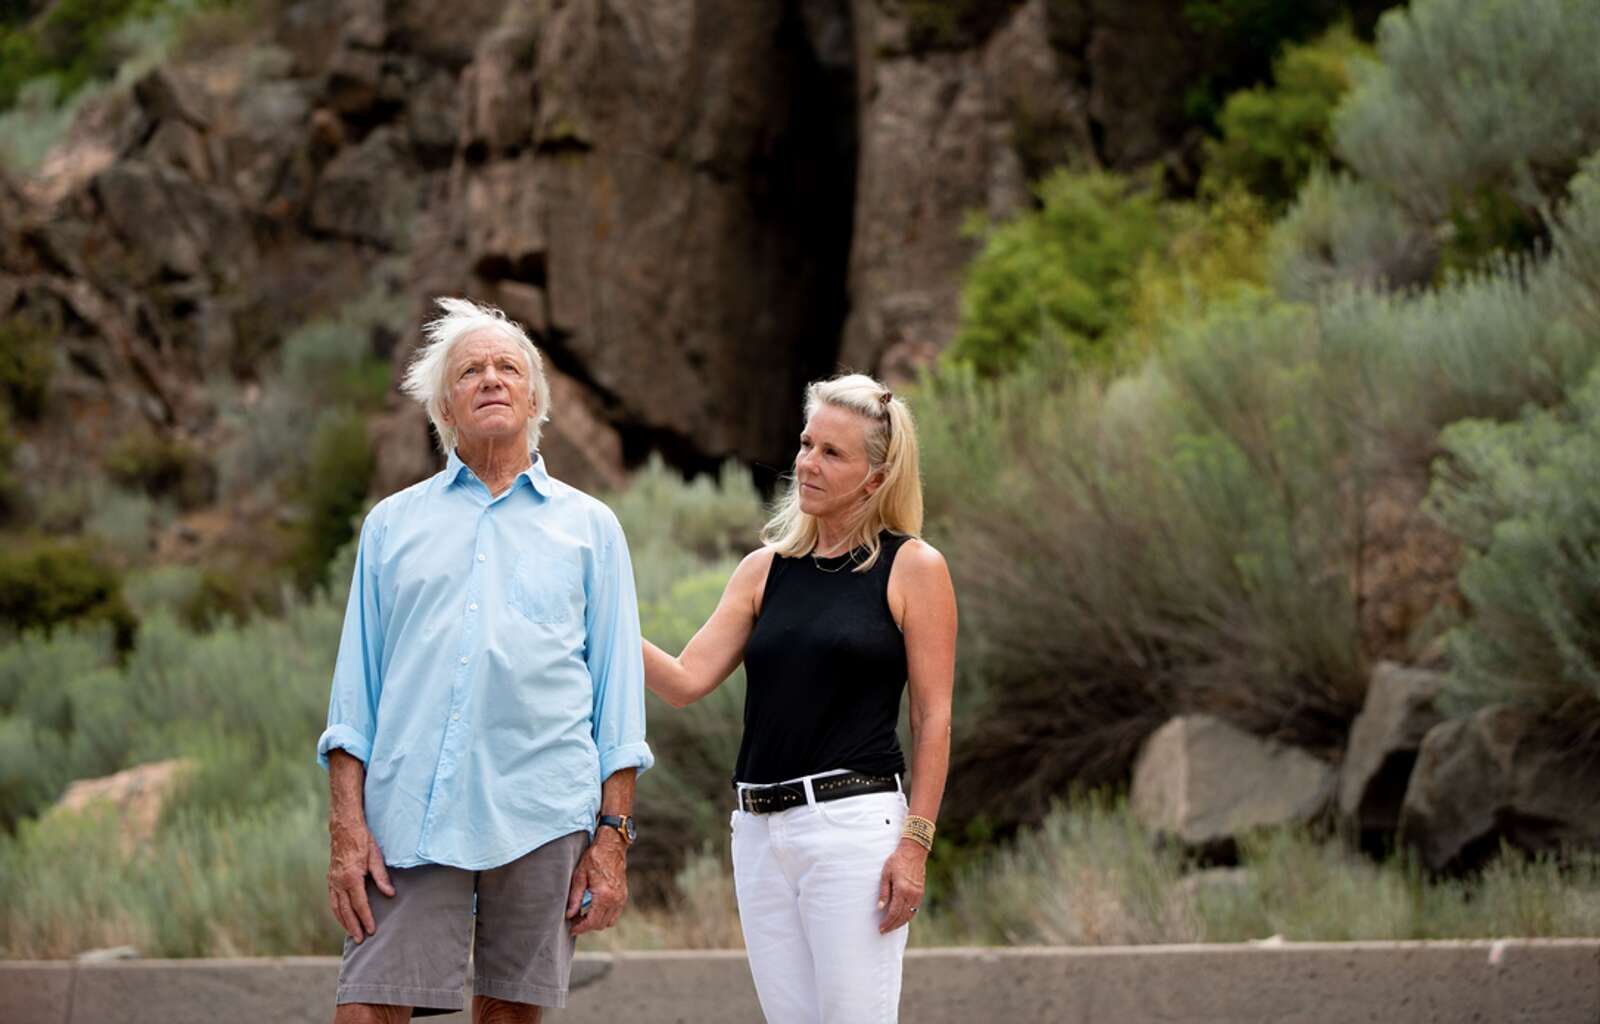 Art and Allison Daily recently participated as subjects in a project called Portraits of Grief, a collaboration between the nonprofit Pathfinders and Aspen photographer Michele Cardamone. Here, the two are pictured in Glenwood Canyon, where Art's wife and two sons died from a rock fall in February 1995. Details on the project will be forthcoming. (Michele Cardamone/Special to The Aspen Times).